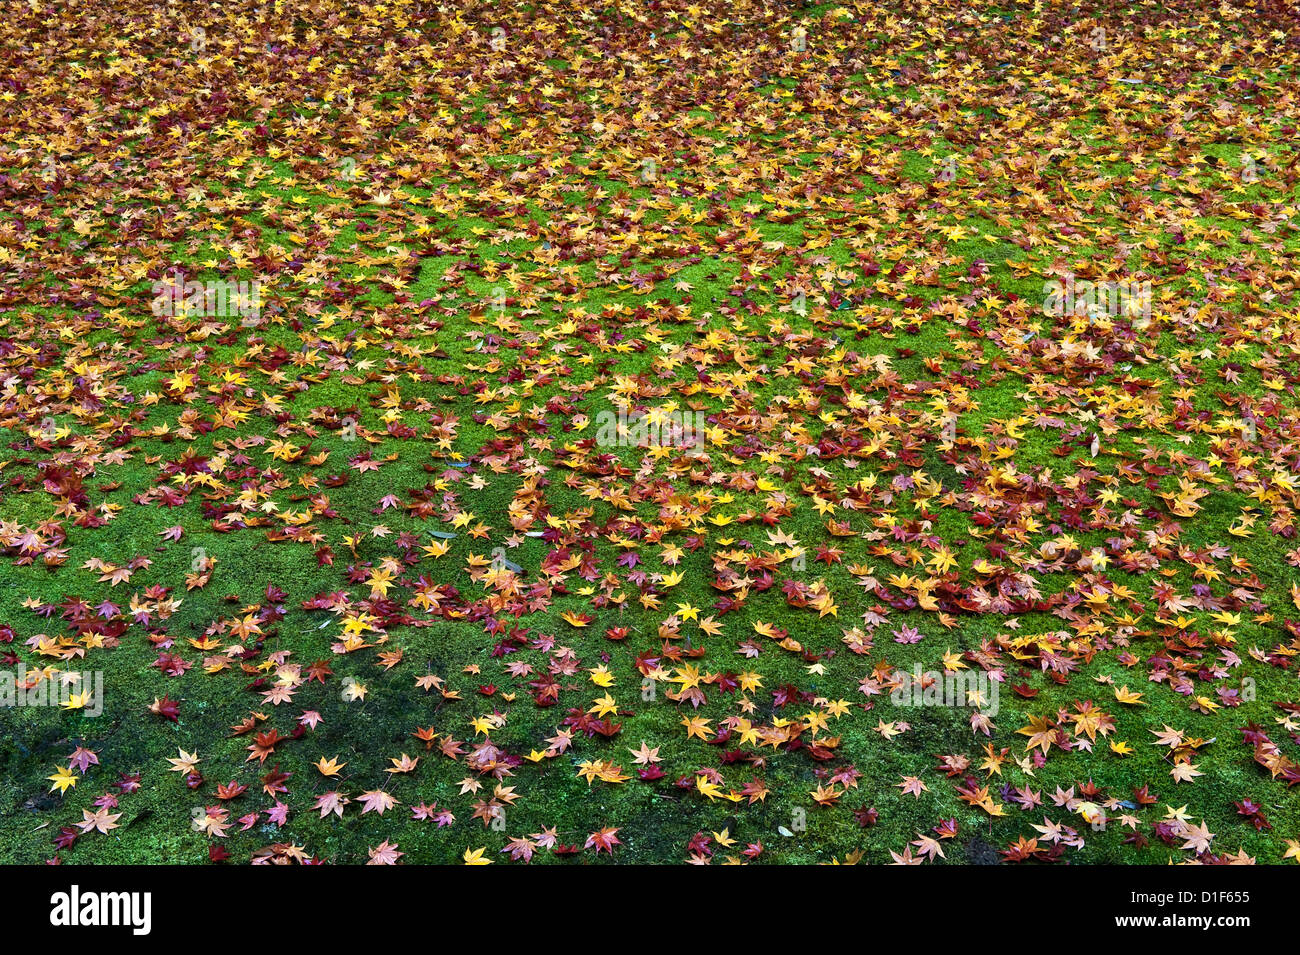 Koto-in Temple, Daitoku-ji, Kyoto, Japan. In autumn, fallen maple leaves cover the moss that surrounds the temple - Stock Image